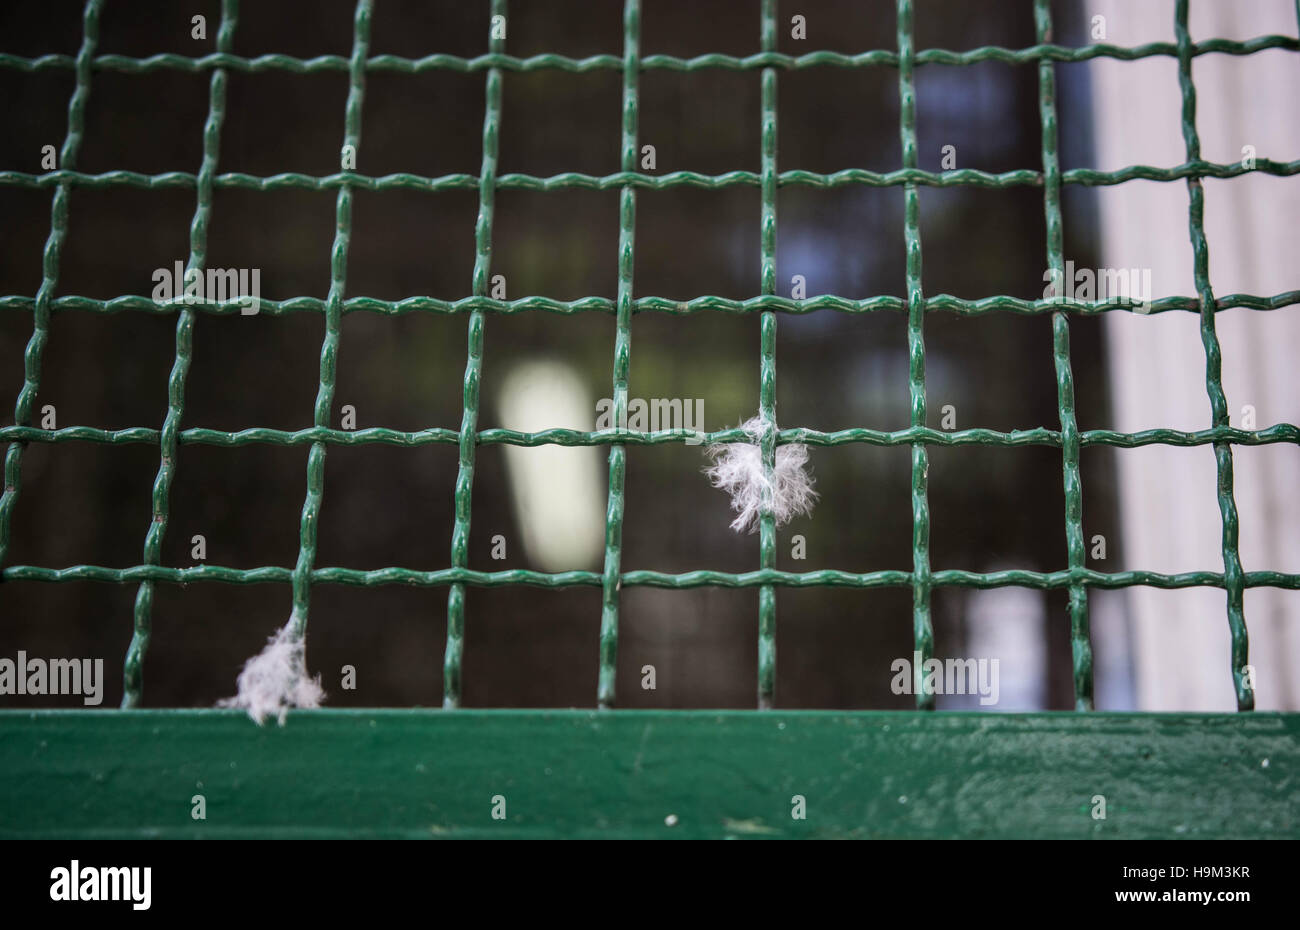 Fluff caught in a green metal grid - Stock Image